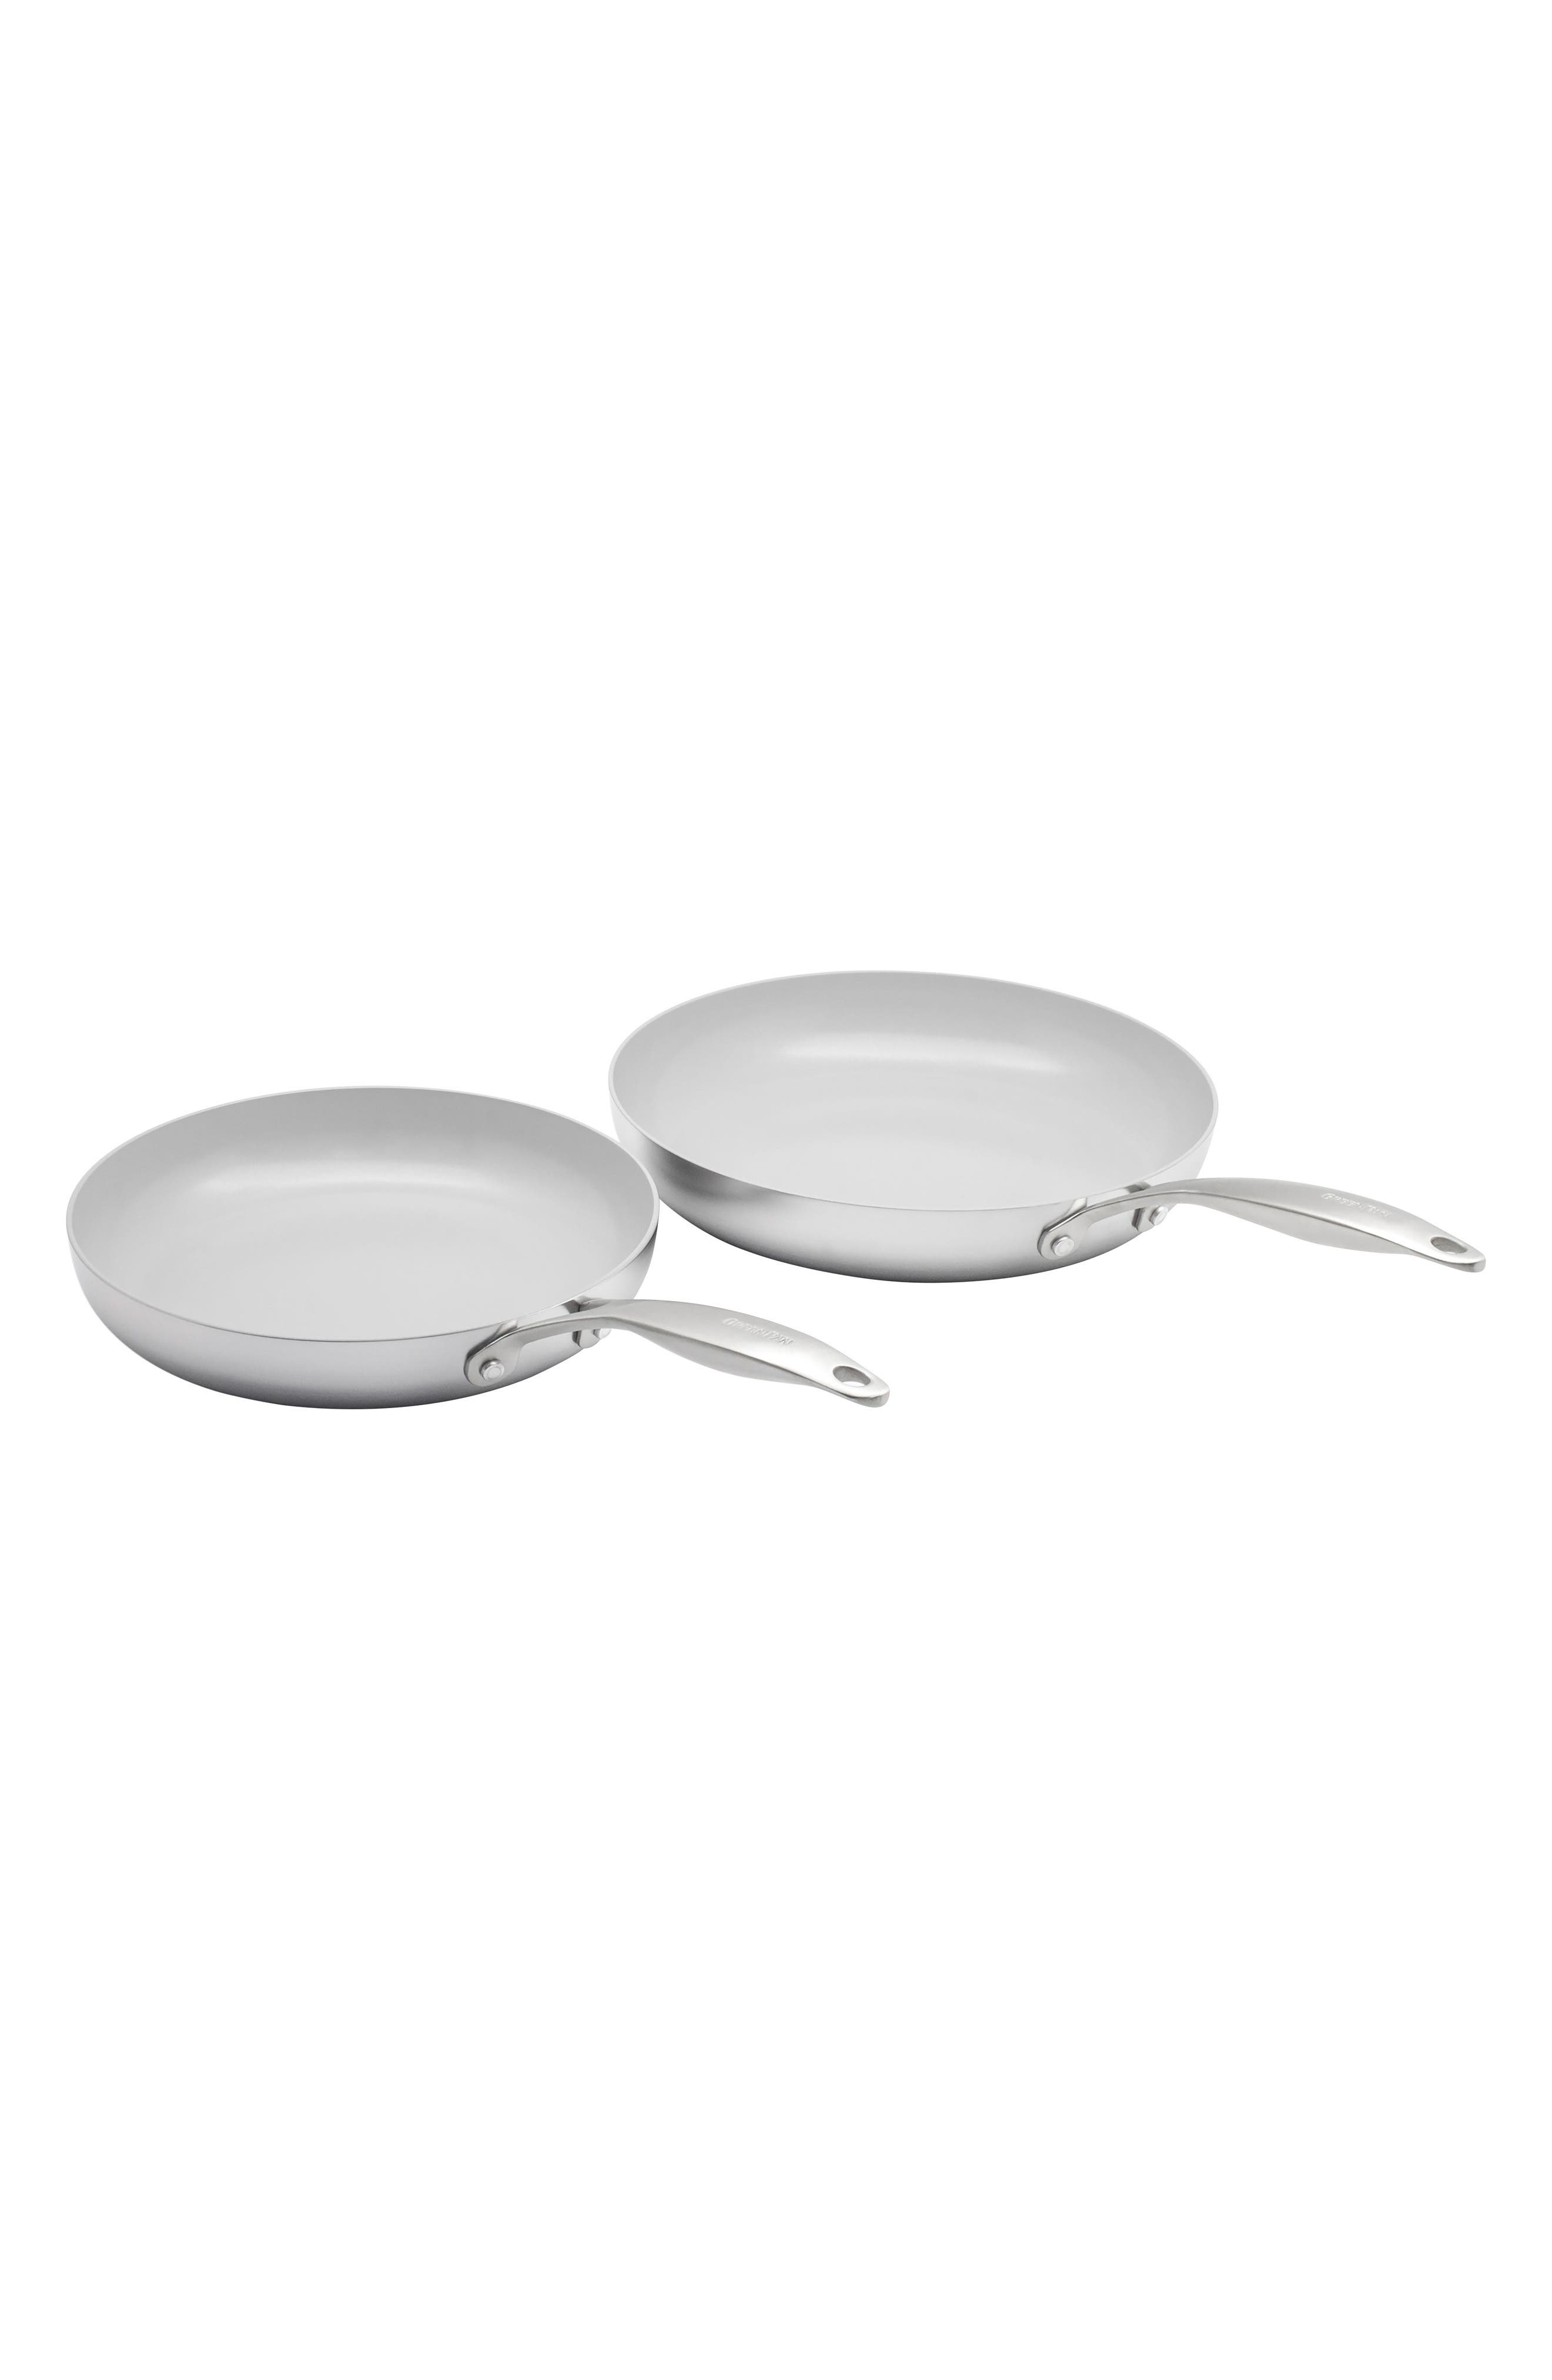 GREENPAN,                             Venice Pro 10-Inch & 12-Inch Multilayer Stainless Steel Ceramic Nonstick Frying Pan Set,                             Main thumbnail 1, color,                             STAINLESS STEEL